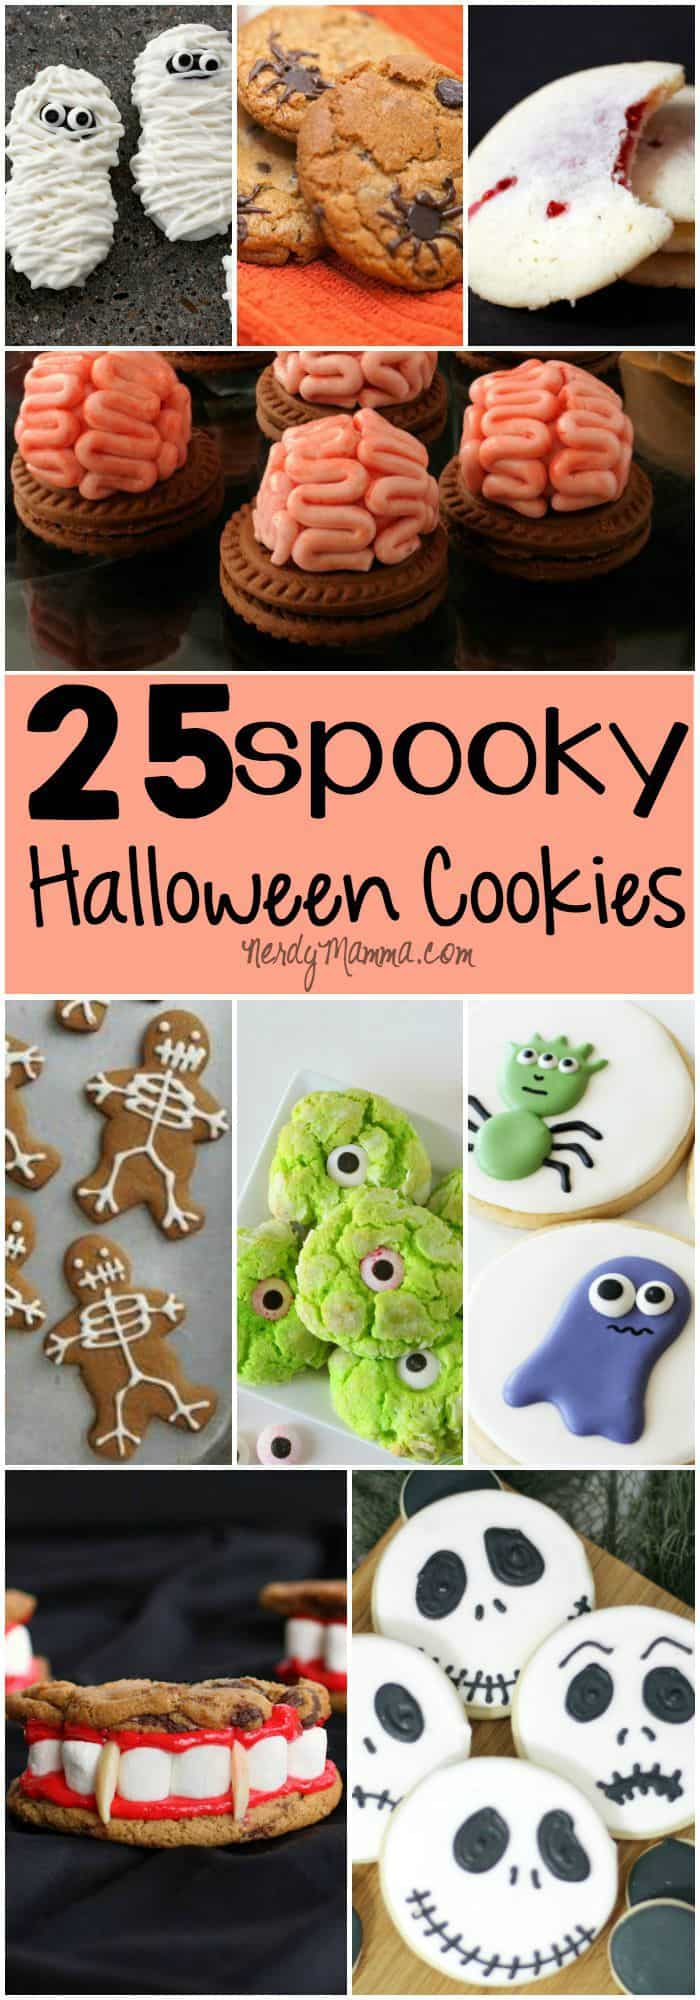 These halloween cookies are so cool! I want to make them all!